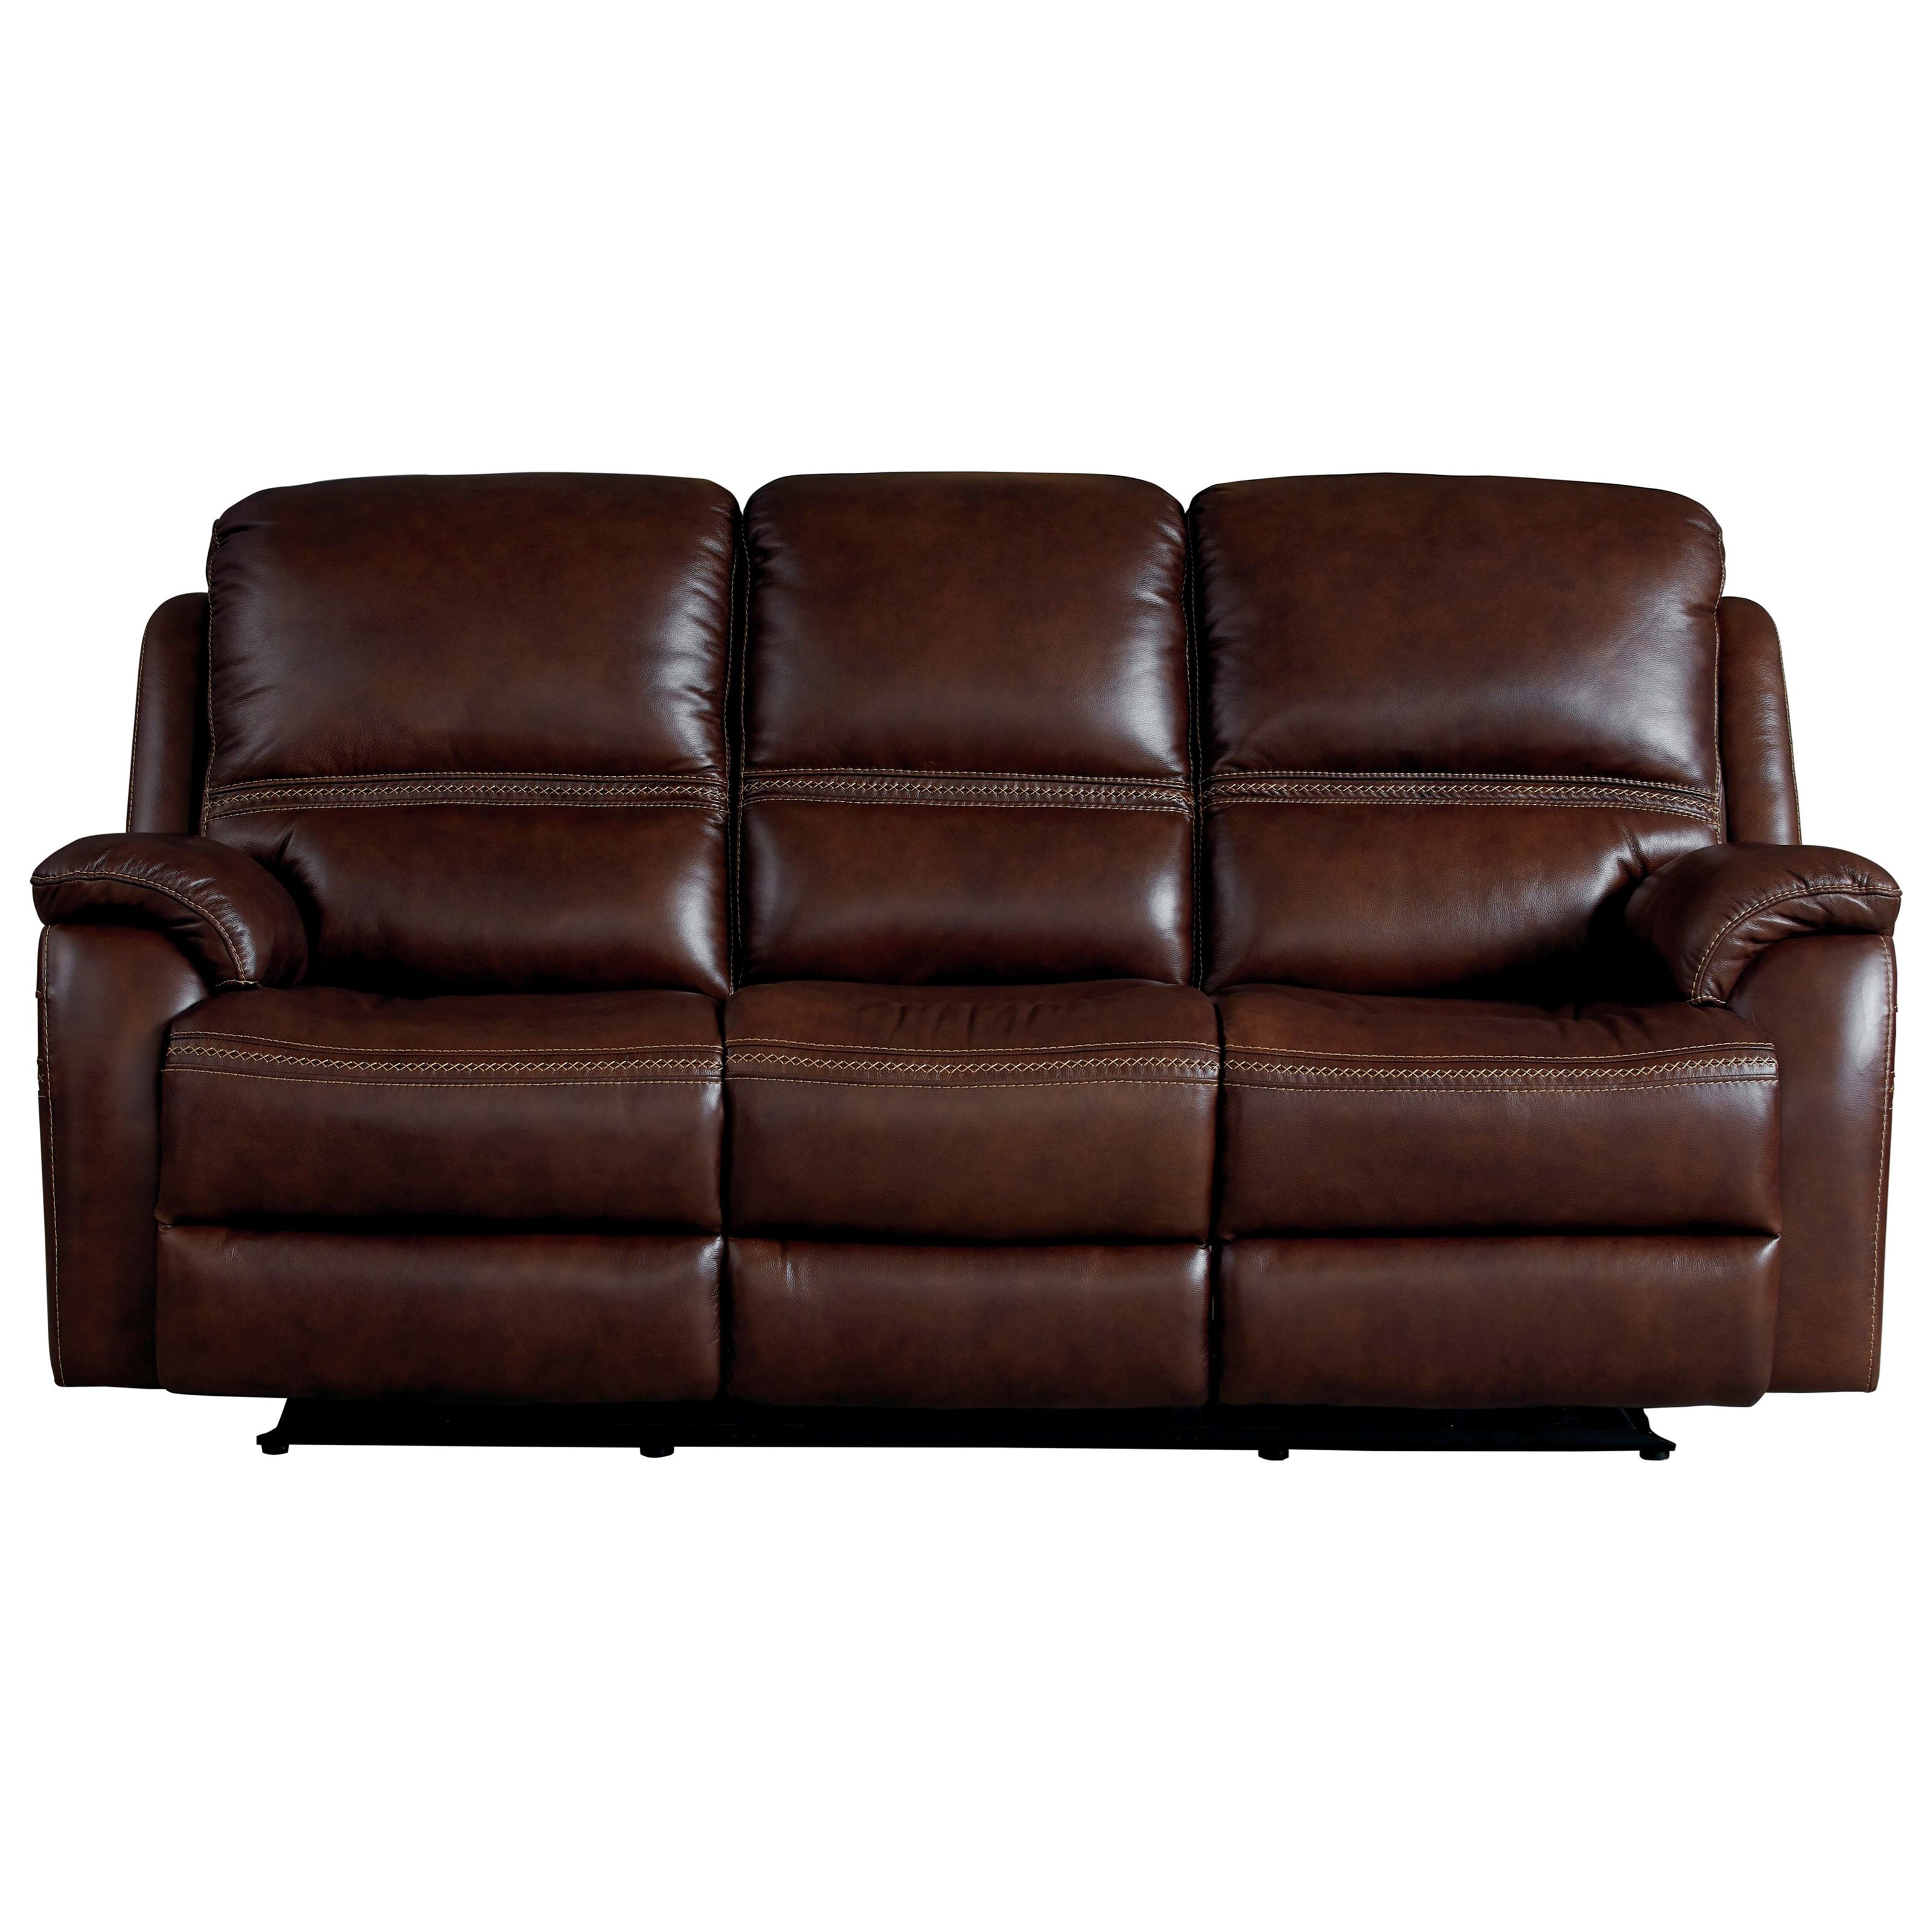 Williams - Club Level by Bassett Contemporary Leather Power Reclining Sofa  with Power Headrests by Bassett at Great American Home Store